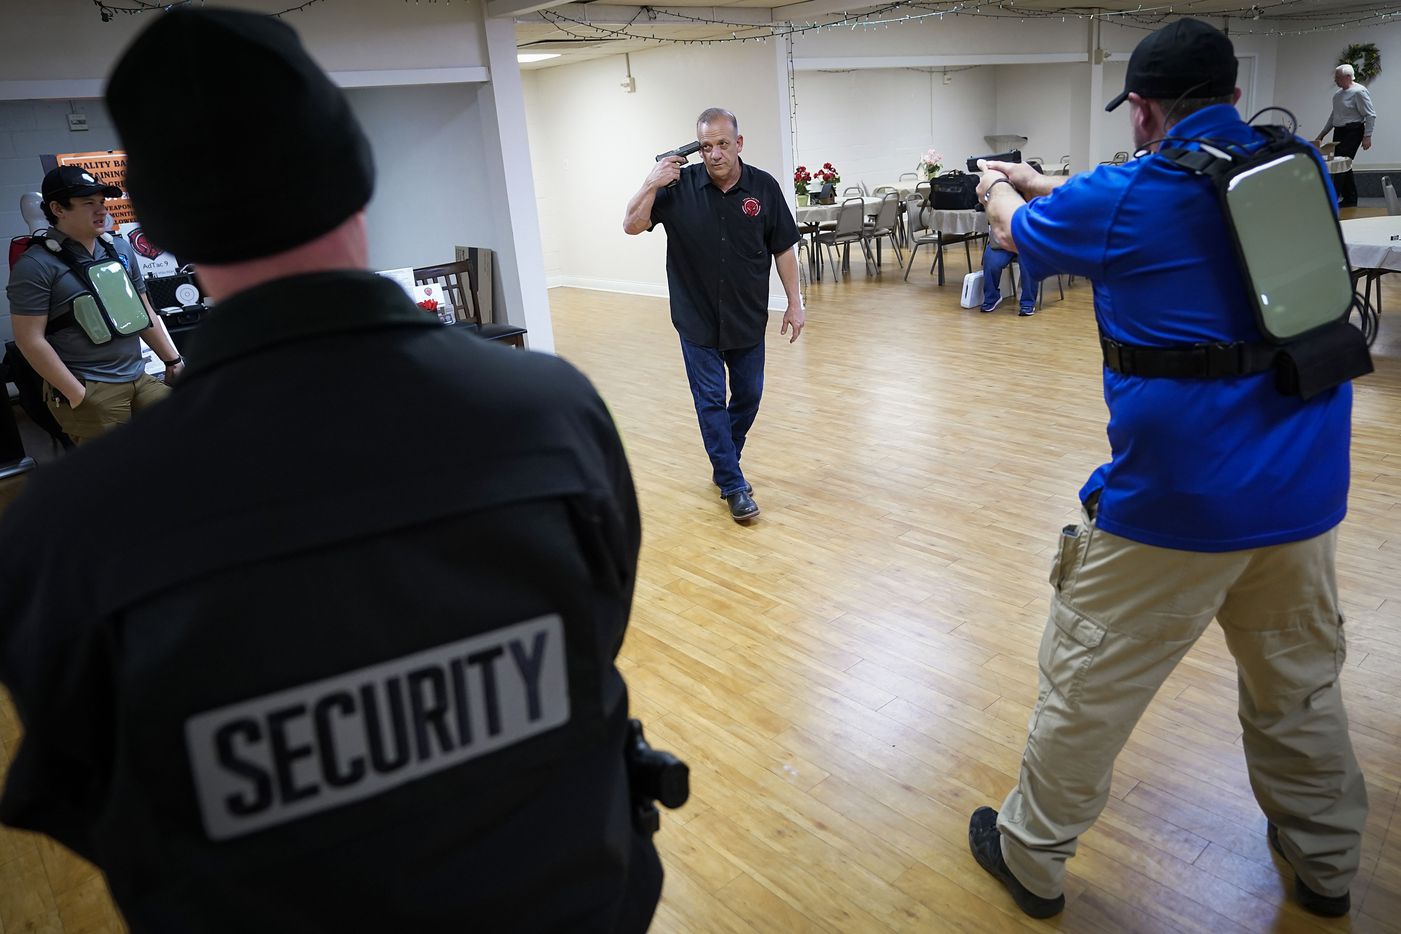 Jack Mills of Virtual Tactical Training Resources (center) portrays a shooter in an active-shooter demostration with David Riggall of Sheepdog Defense Group (right) during a church safety seminar at North Pointe Baptist Church on Sunday, Jan. 26, 2020, in Hurst, Texas.